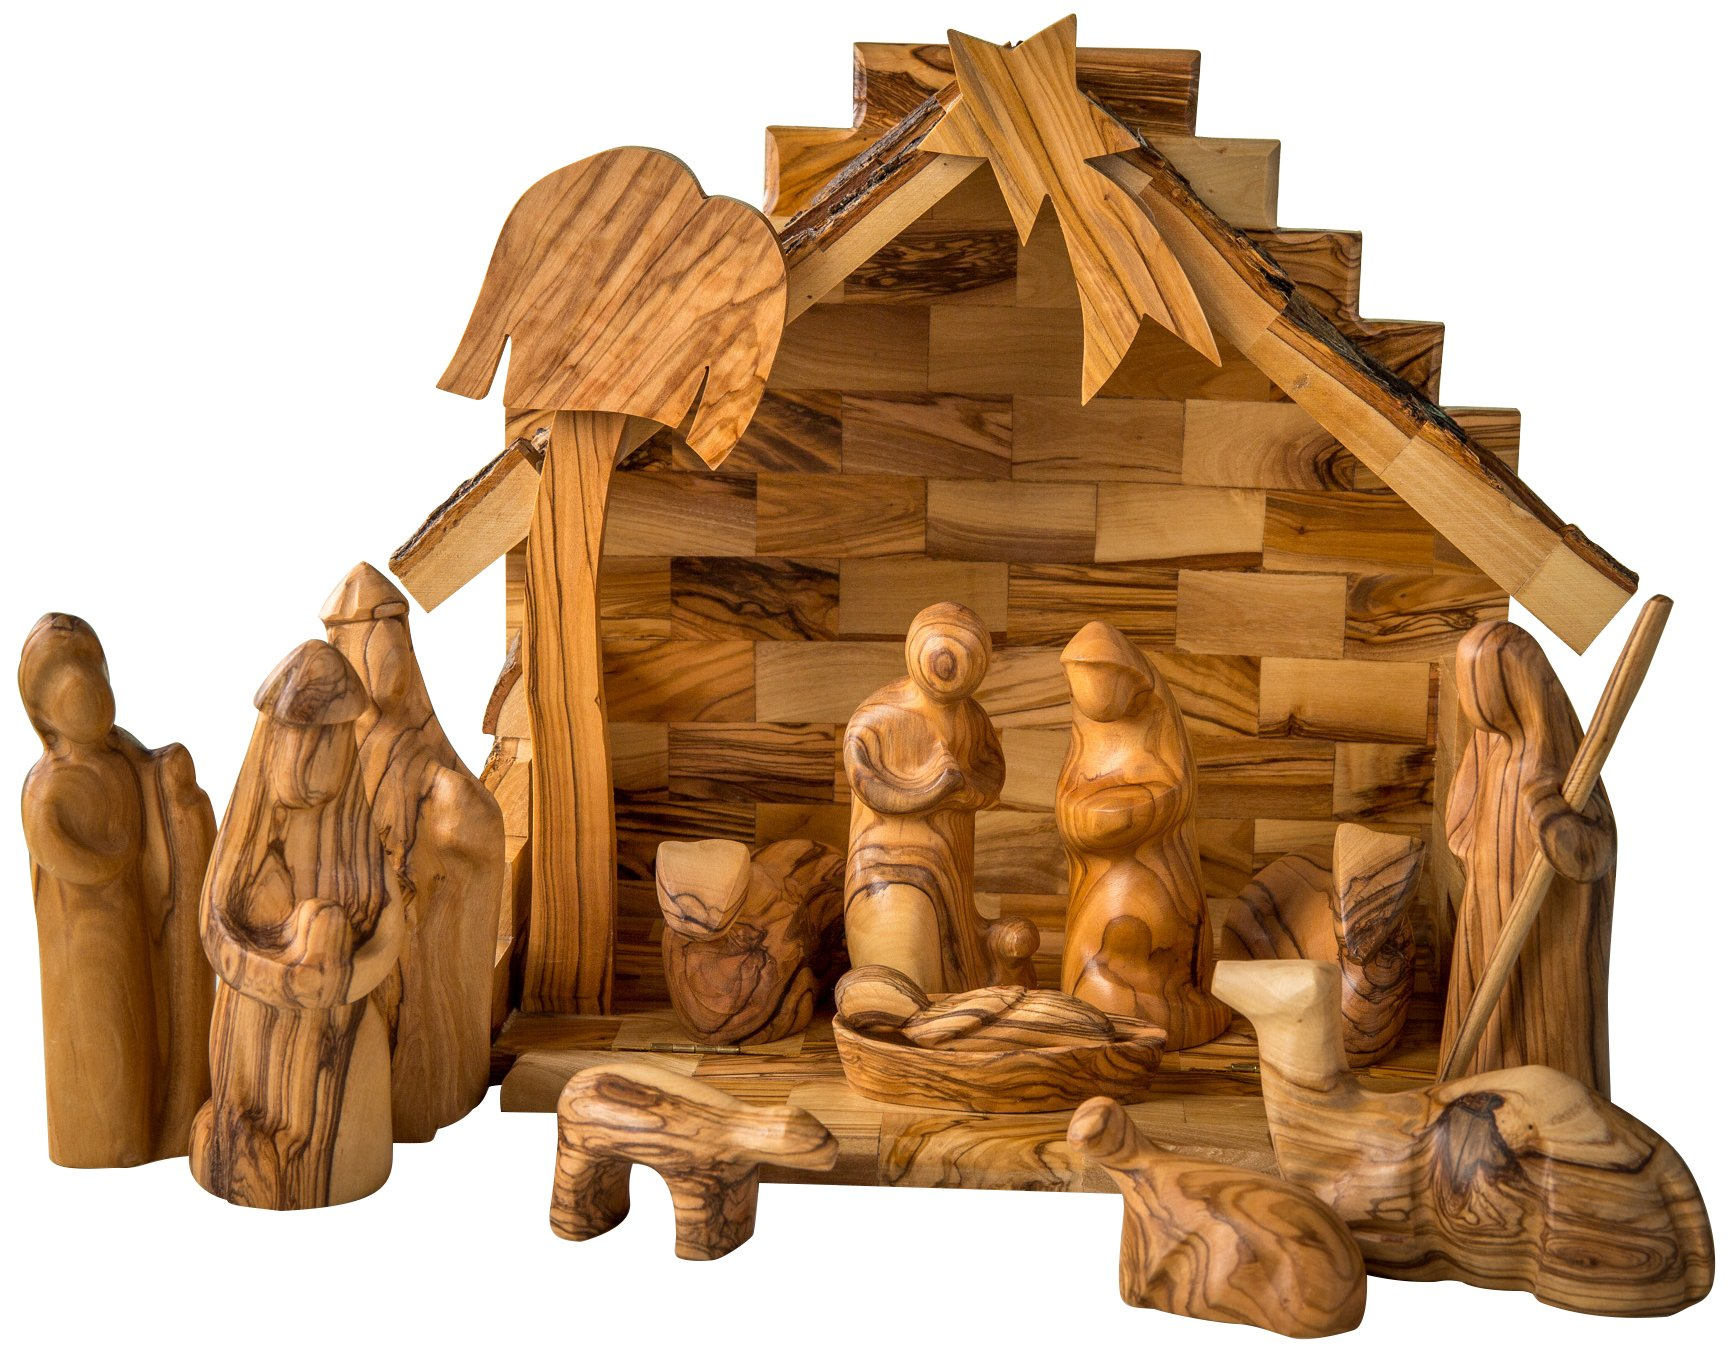 Earthwood Olive Wood Stable and Nativity Set with Modern Figures by Earthwood